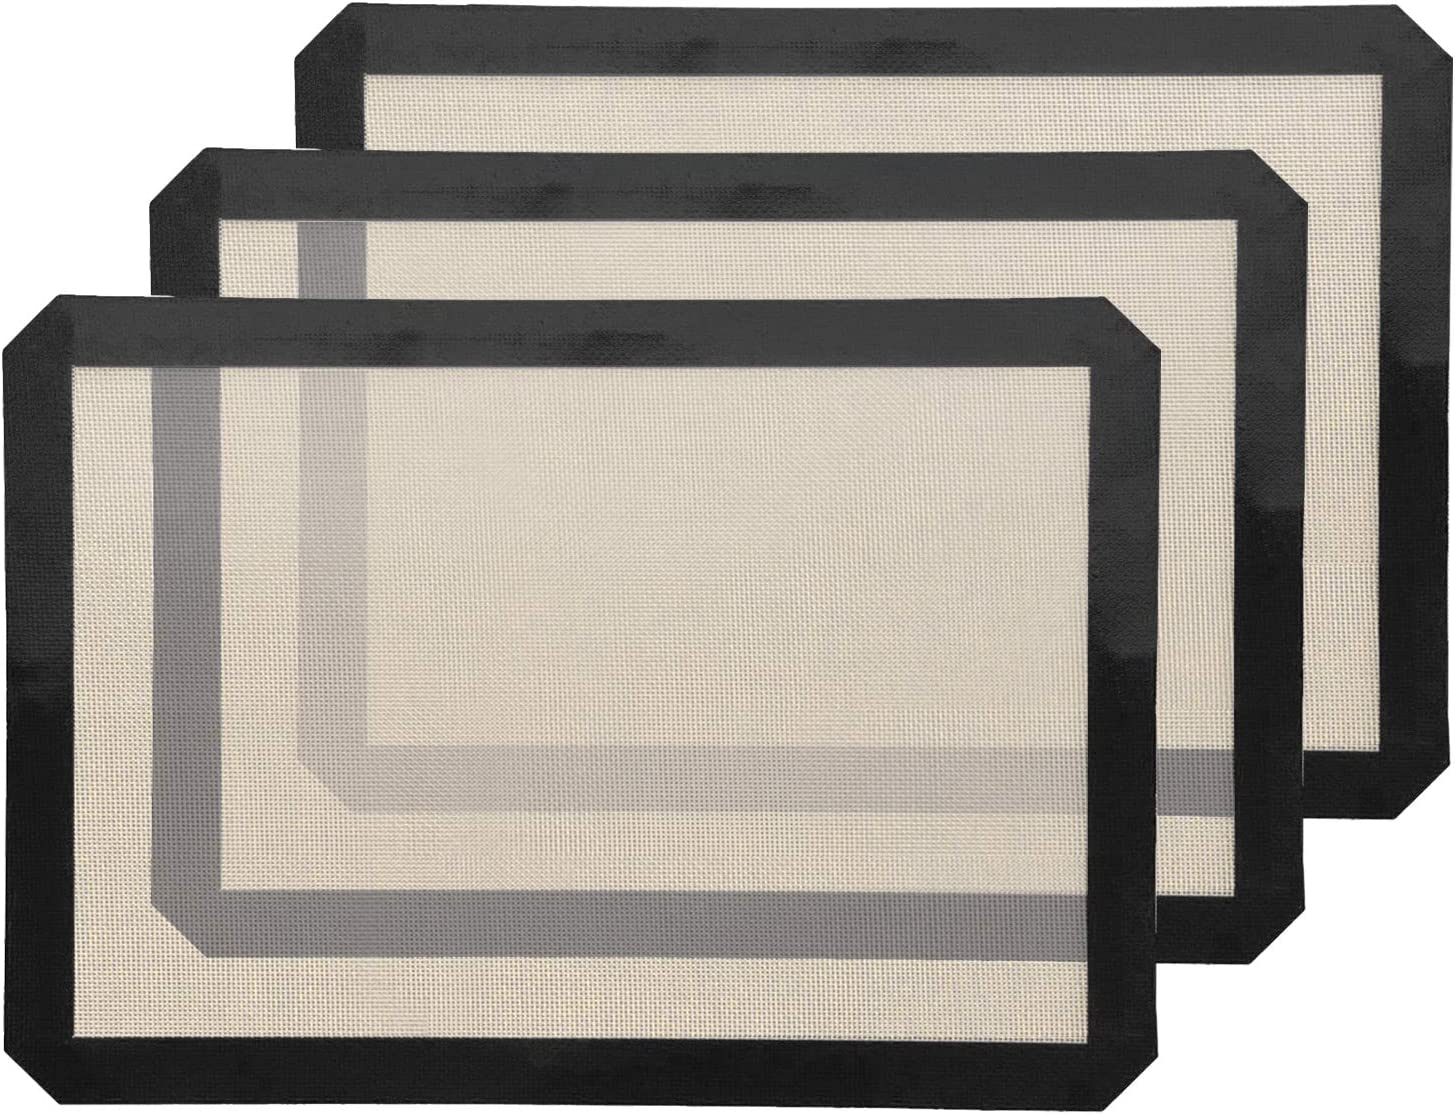 Silicone Baking Mats, Non-Stick and Eco-Friendly, Food Grade Heat Resistant, Non-Toxic for Oven Baking, Black / 3 Pack